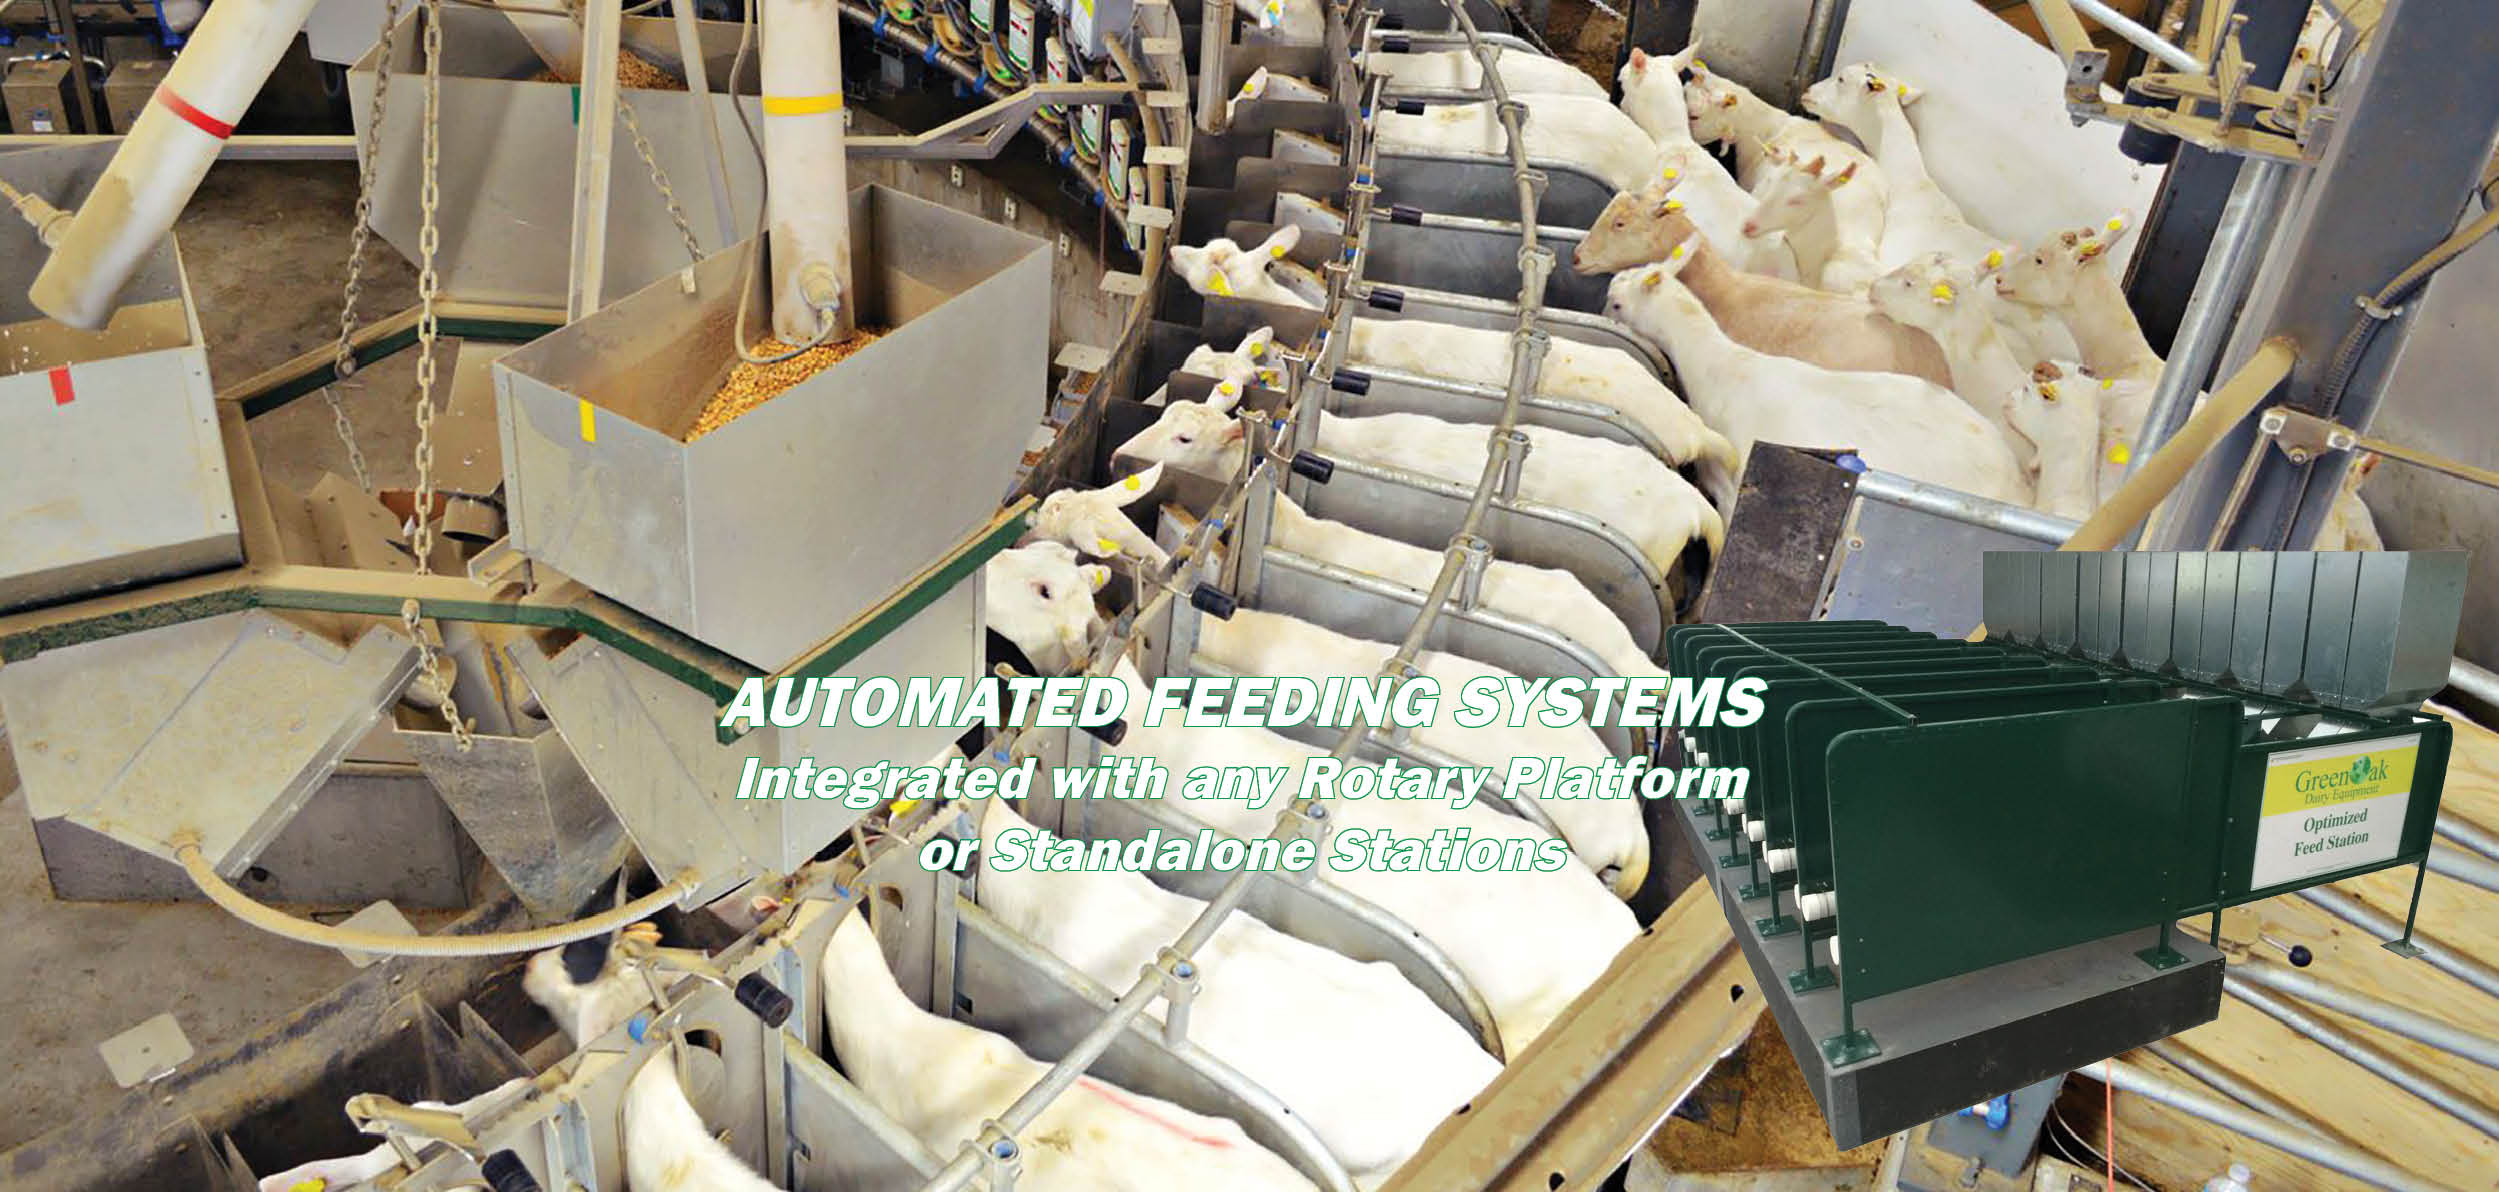 AUTOMATED FEEDING SYSTEMS WL.jpg